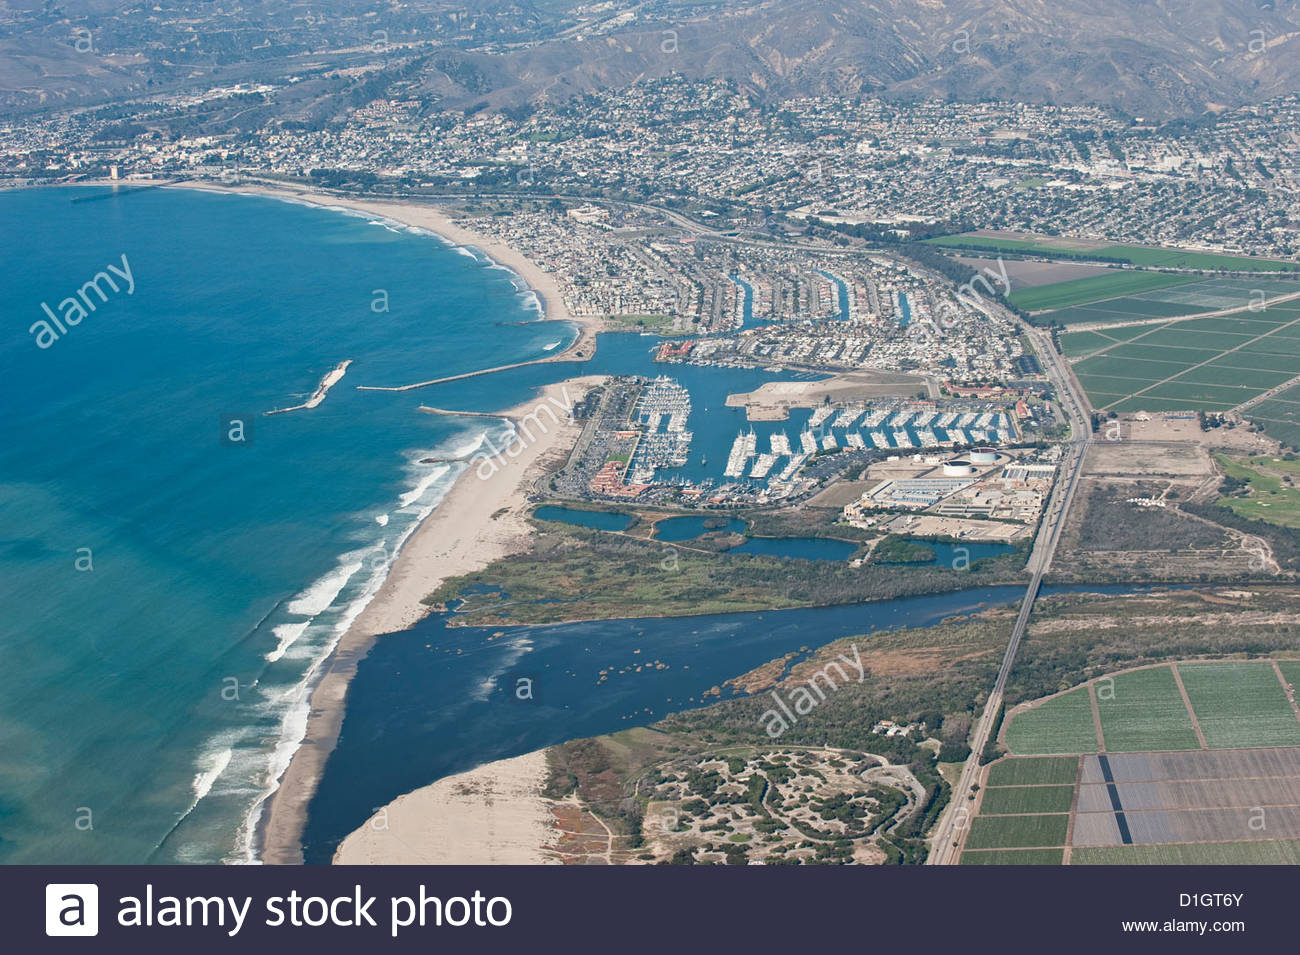 Photo aérienne de Ventura marina, Ventura, Californie, États-Unis d'Amérique, Amérique du Photo Stock